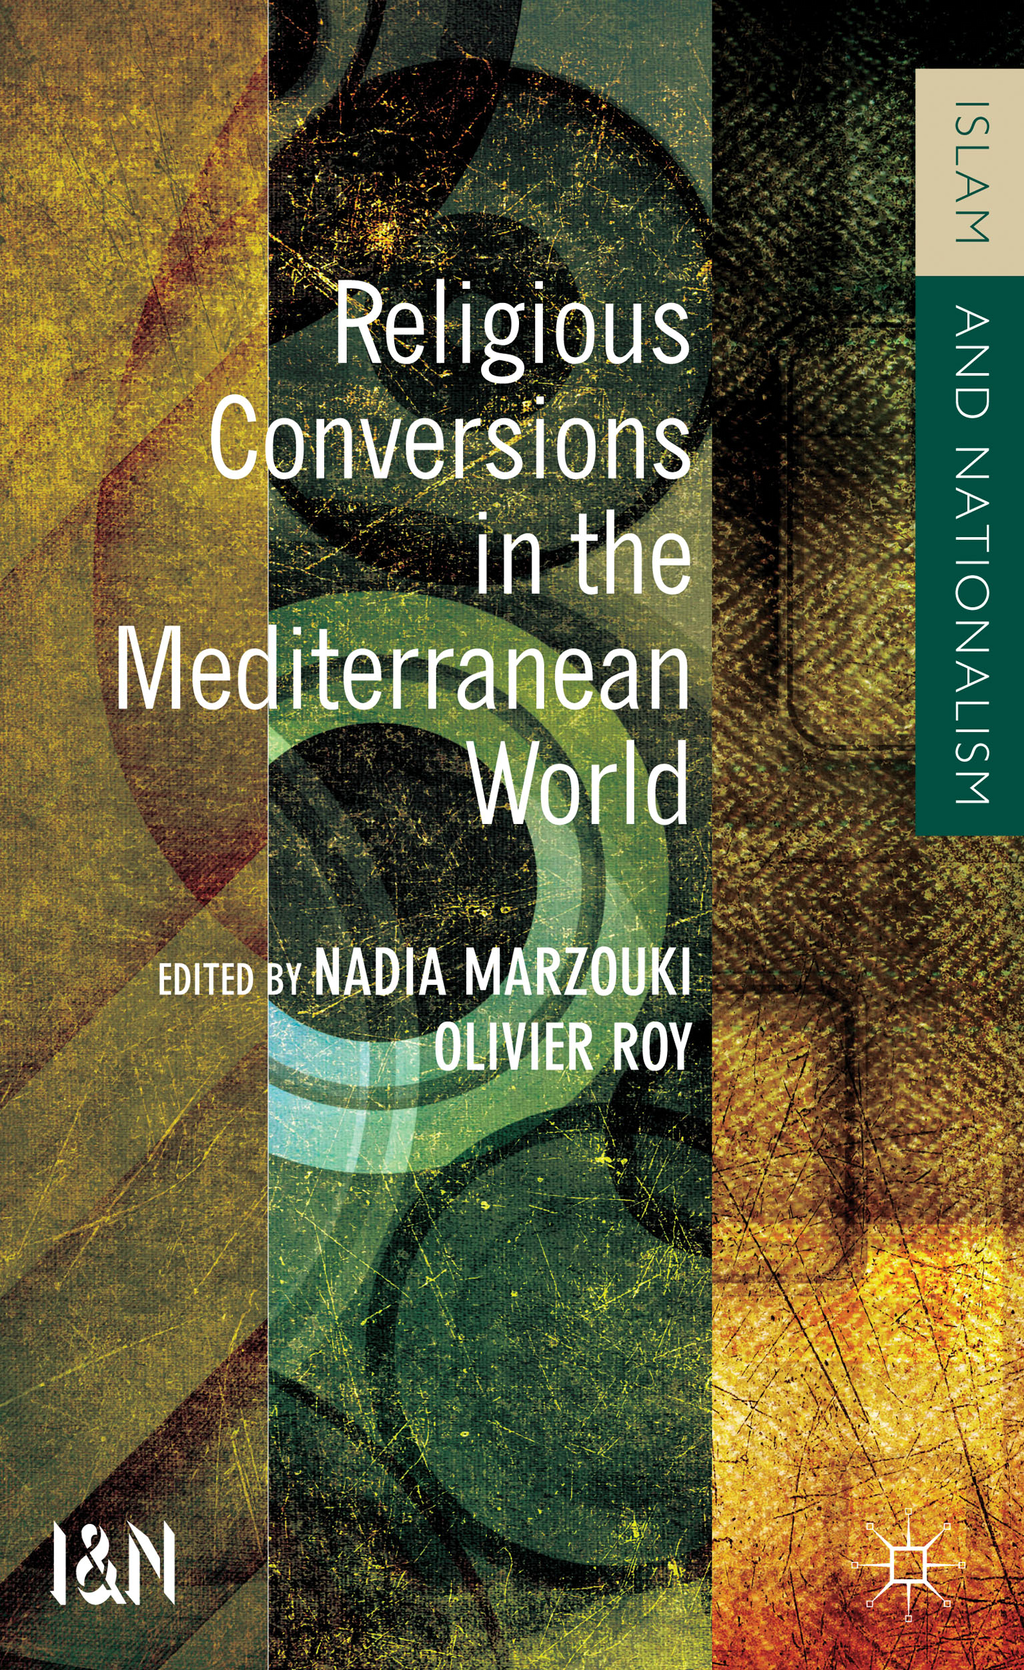 Religious Conversions in the Mediterranean World